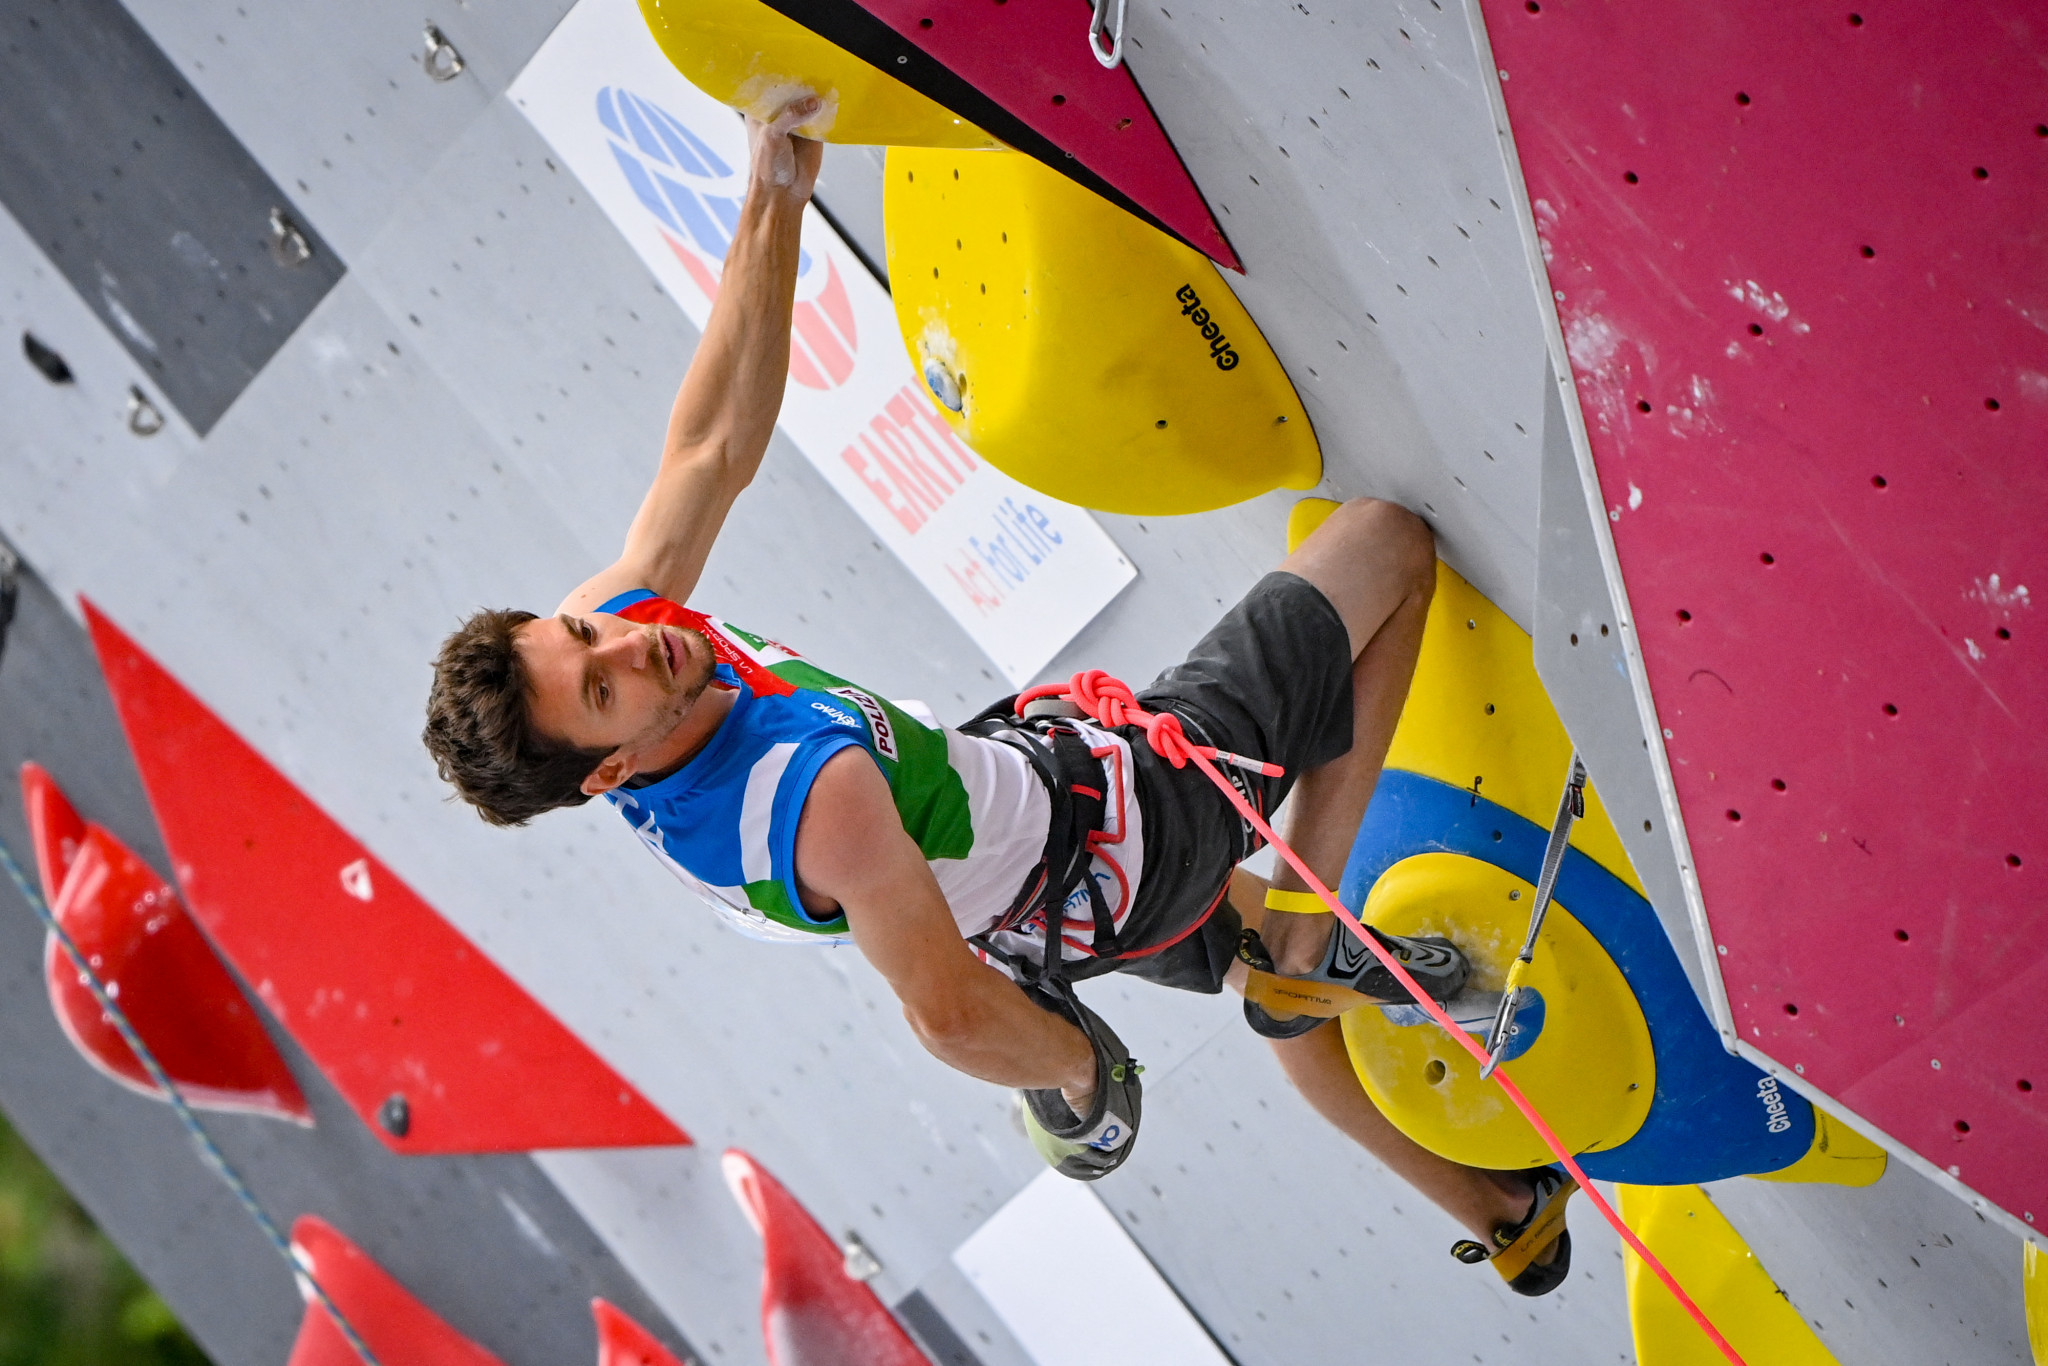 IFSC World Cup circuit resumes with Ghisolfi and Grossman looking to maintain lead advantages